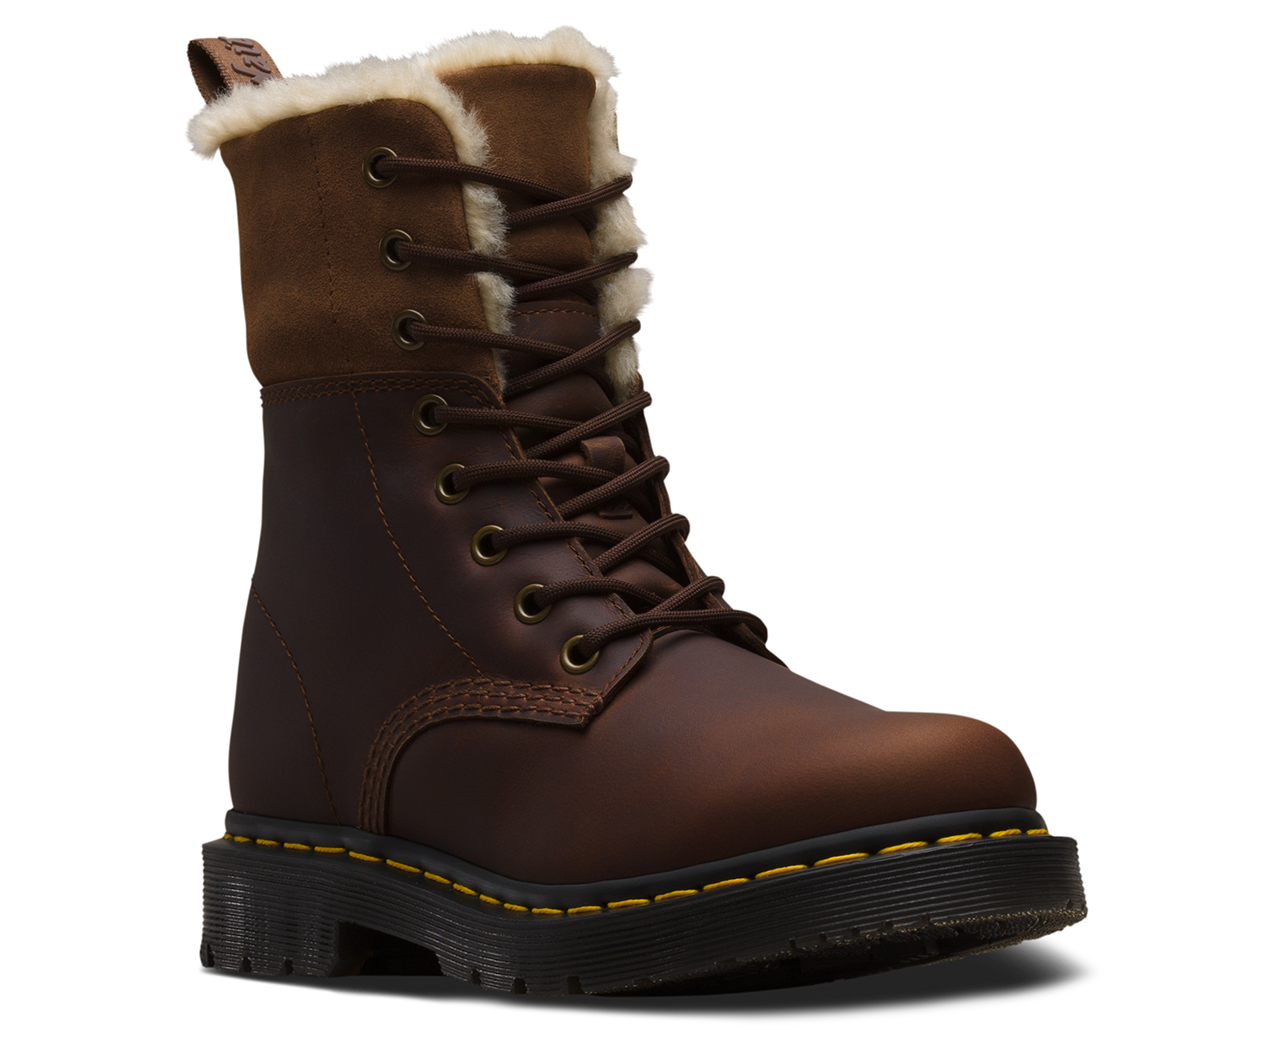 KOLBERT WINTERGRIPDM's Bootsamp; DM'S 1460 Wintergrip ShoesDr tCxQBrdhso